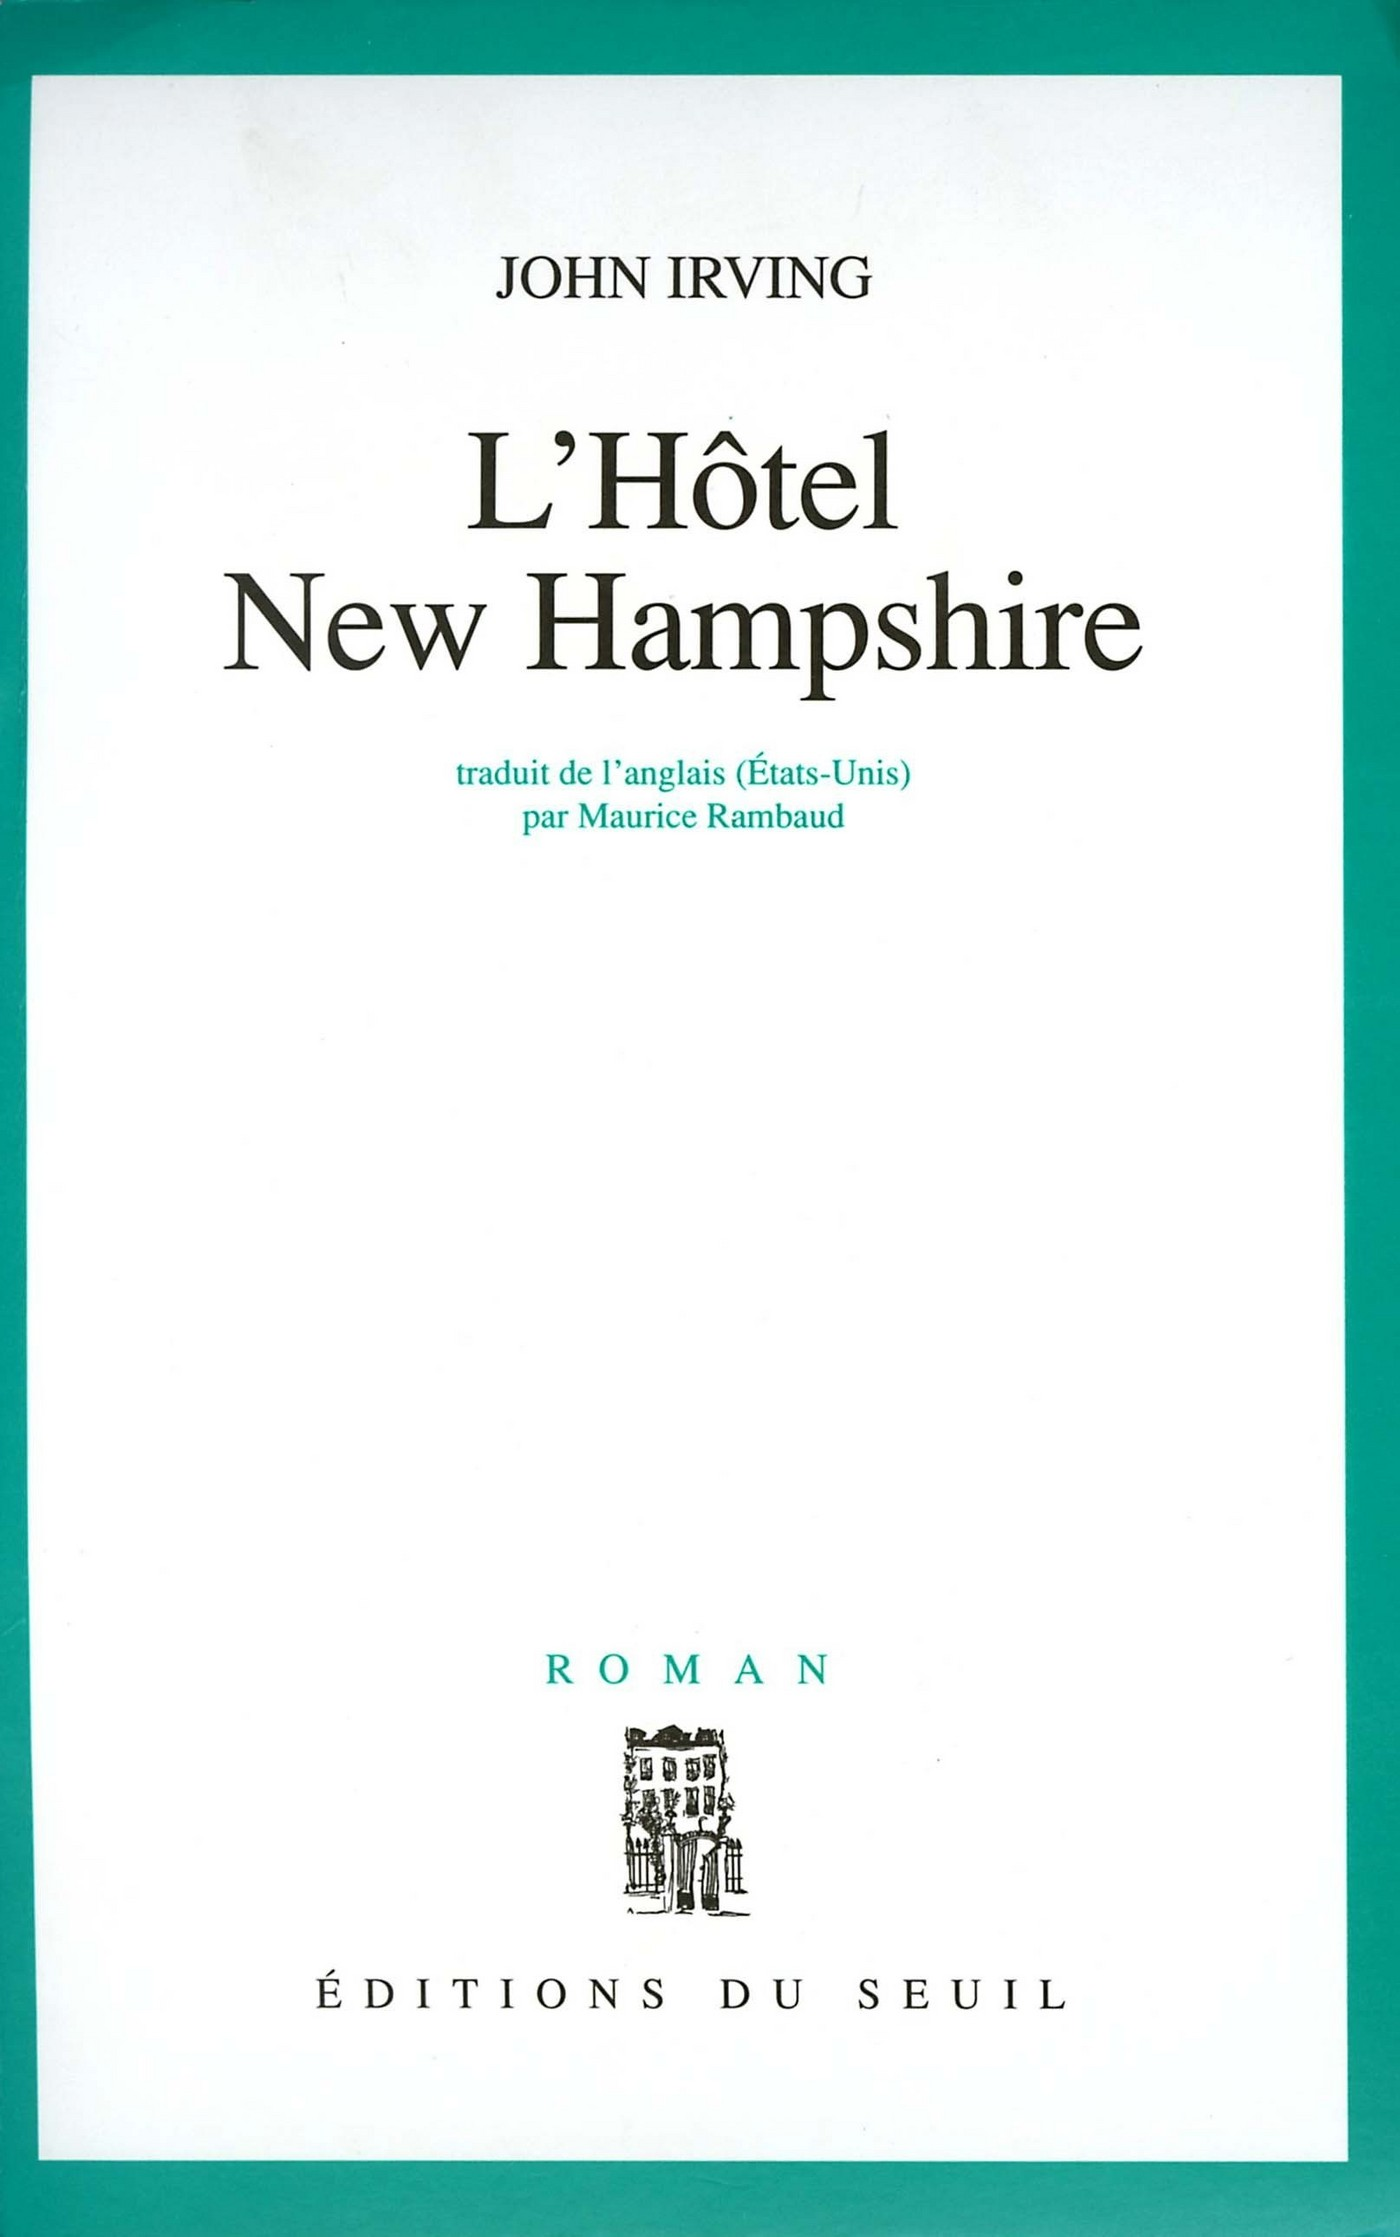 L'Hôtel New Hampshire